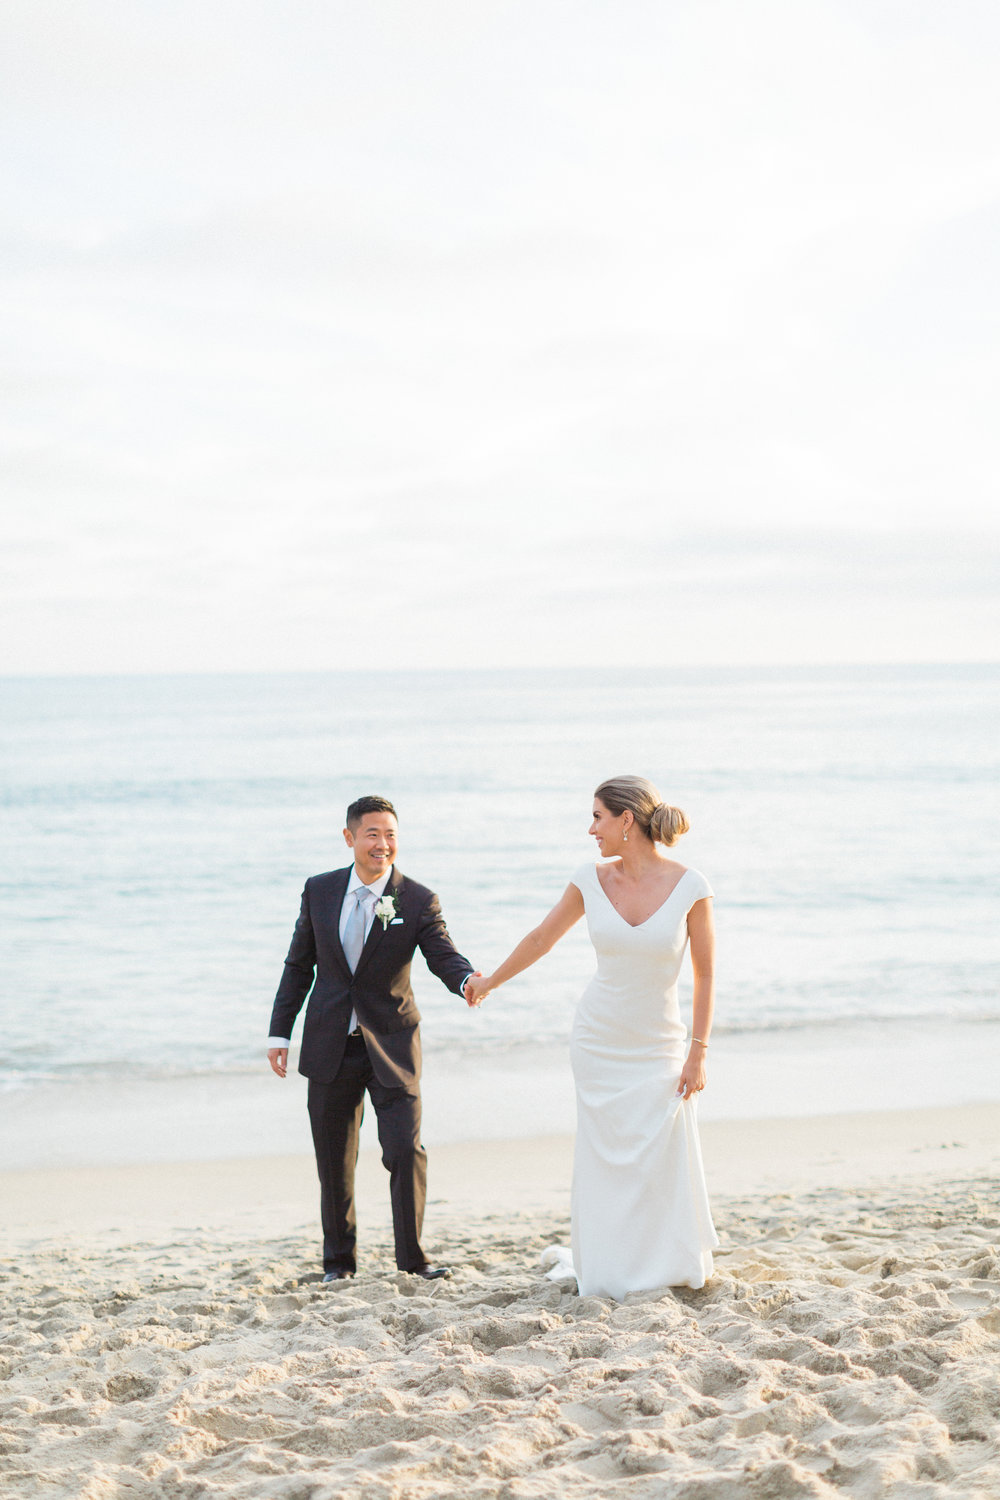 LagunaBeach_Wedding_Photographer_McKenzie_Smith_Photography-834.jpg